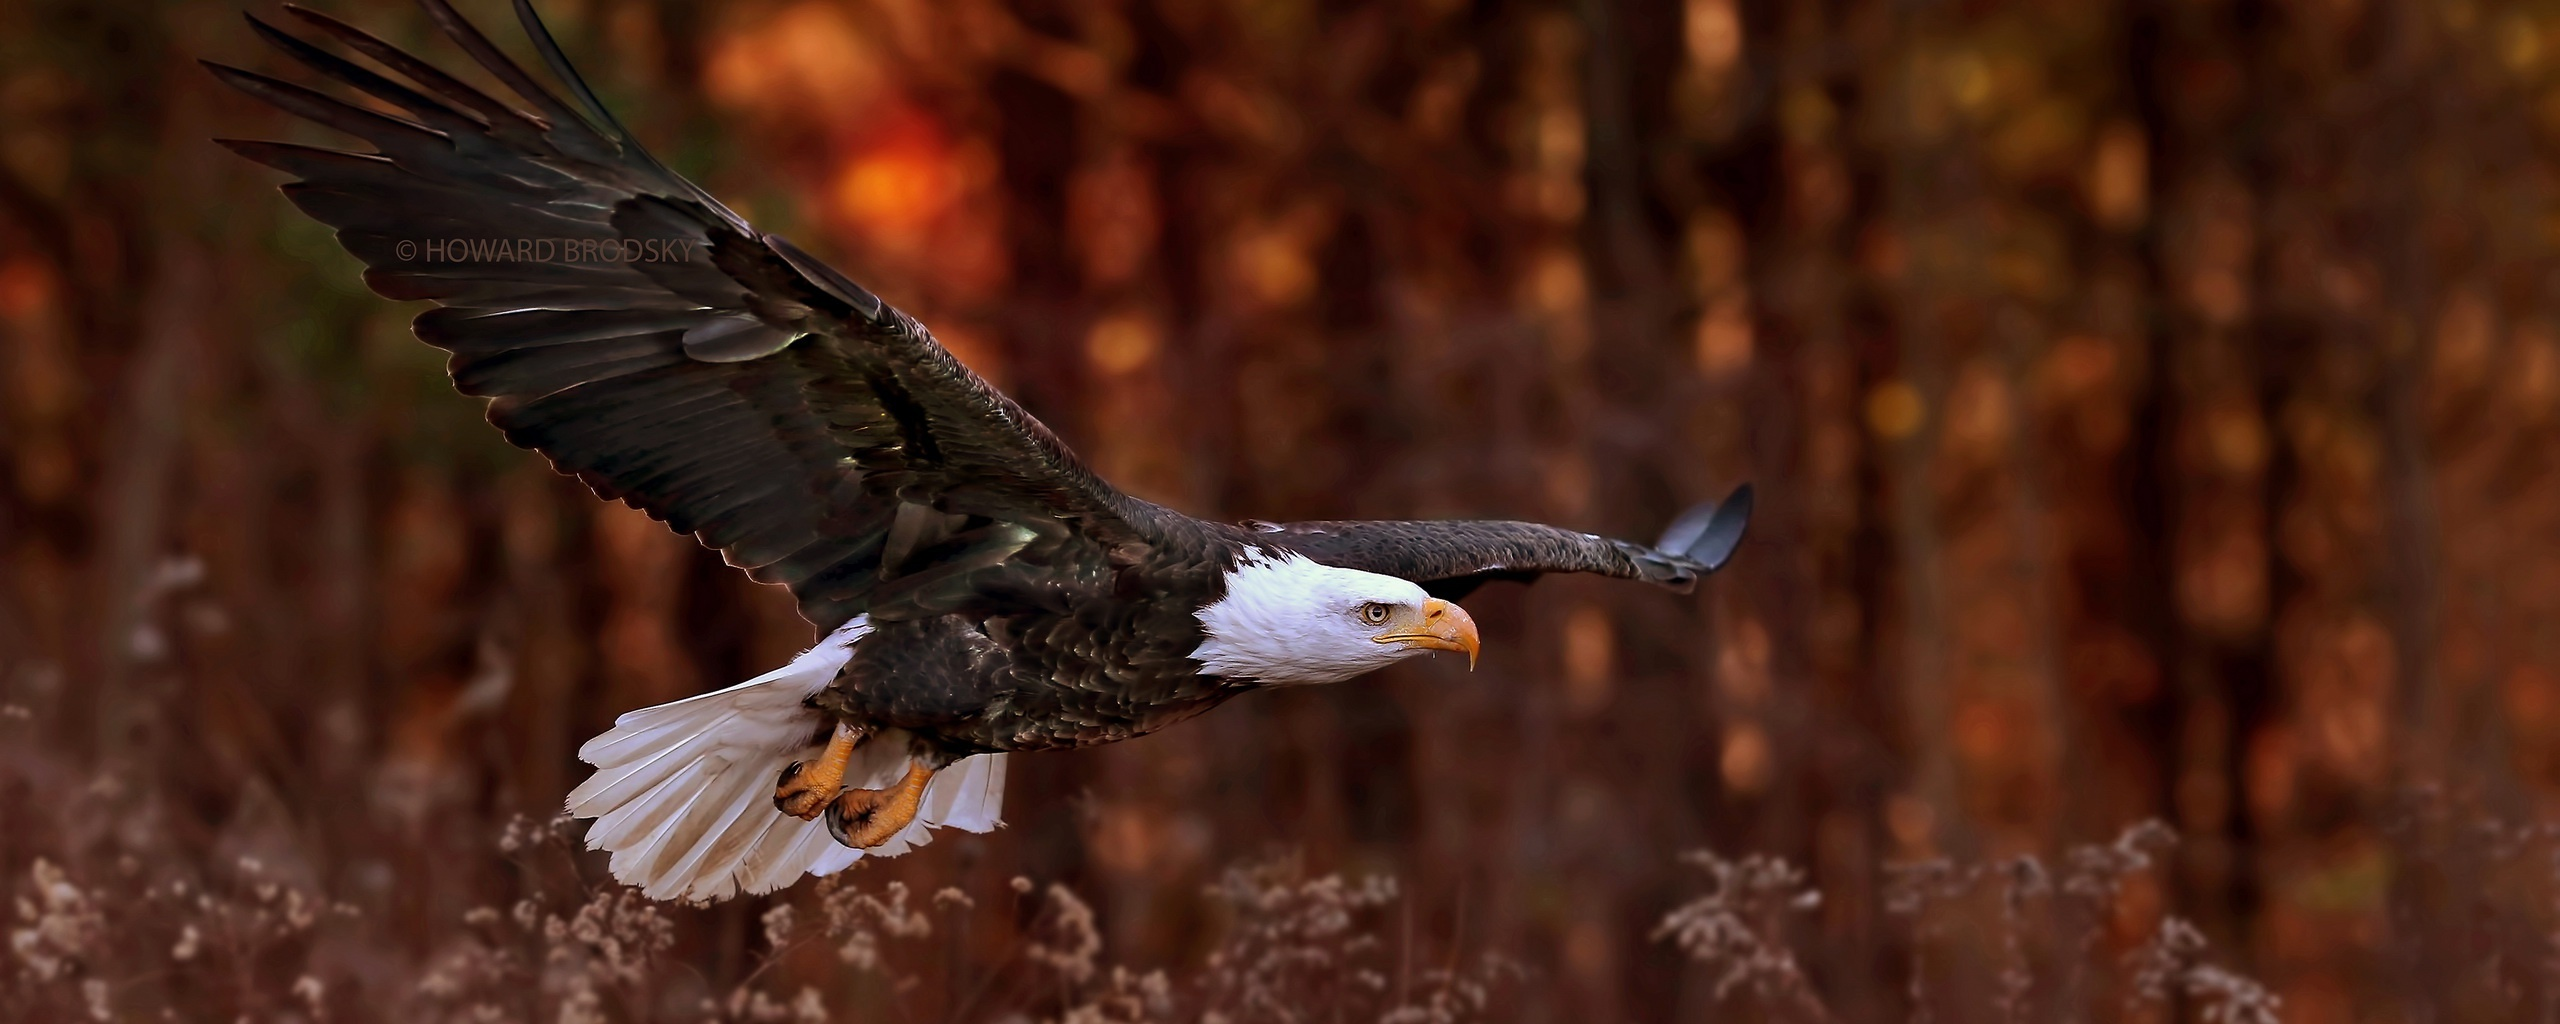 bald-eagle-flight-sq.jpg